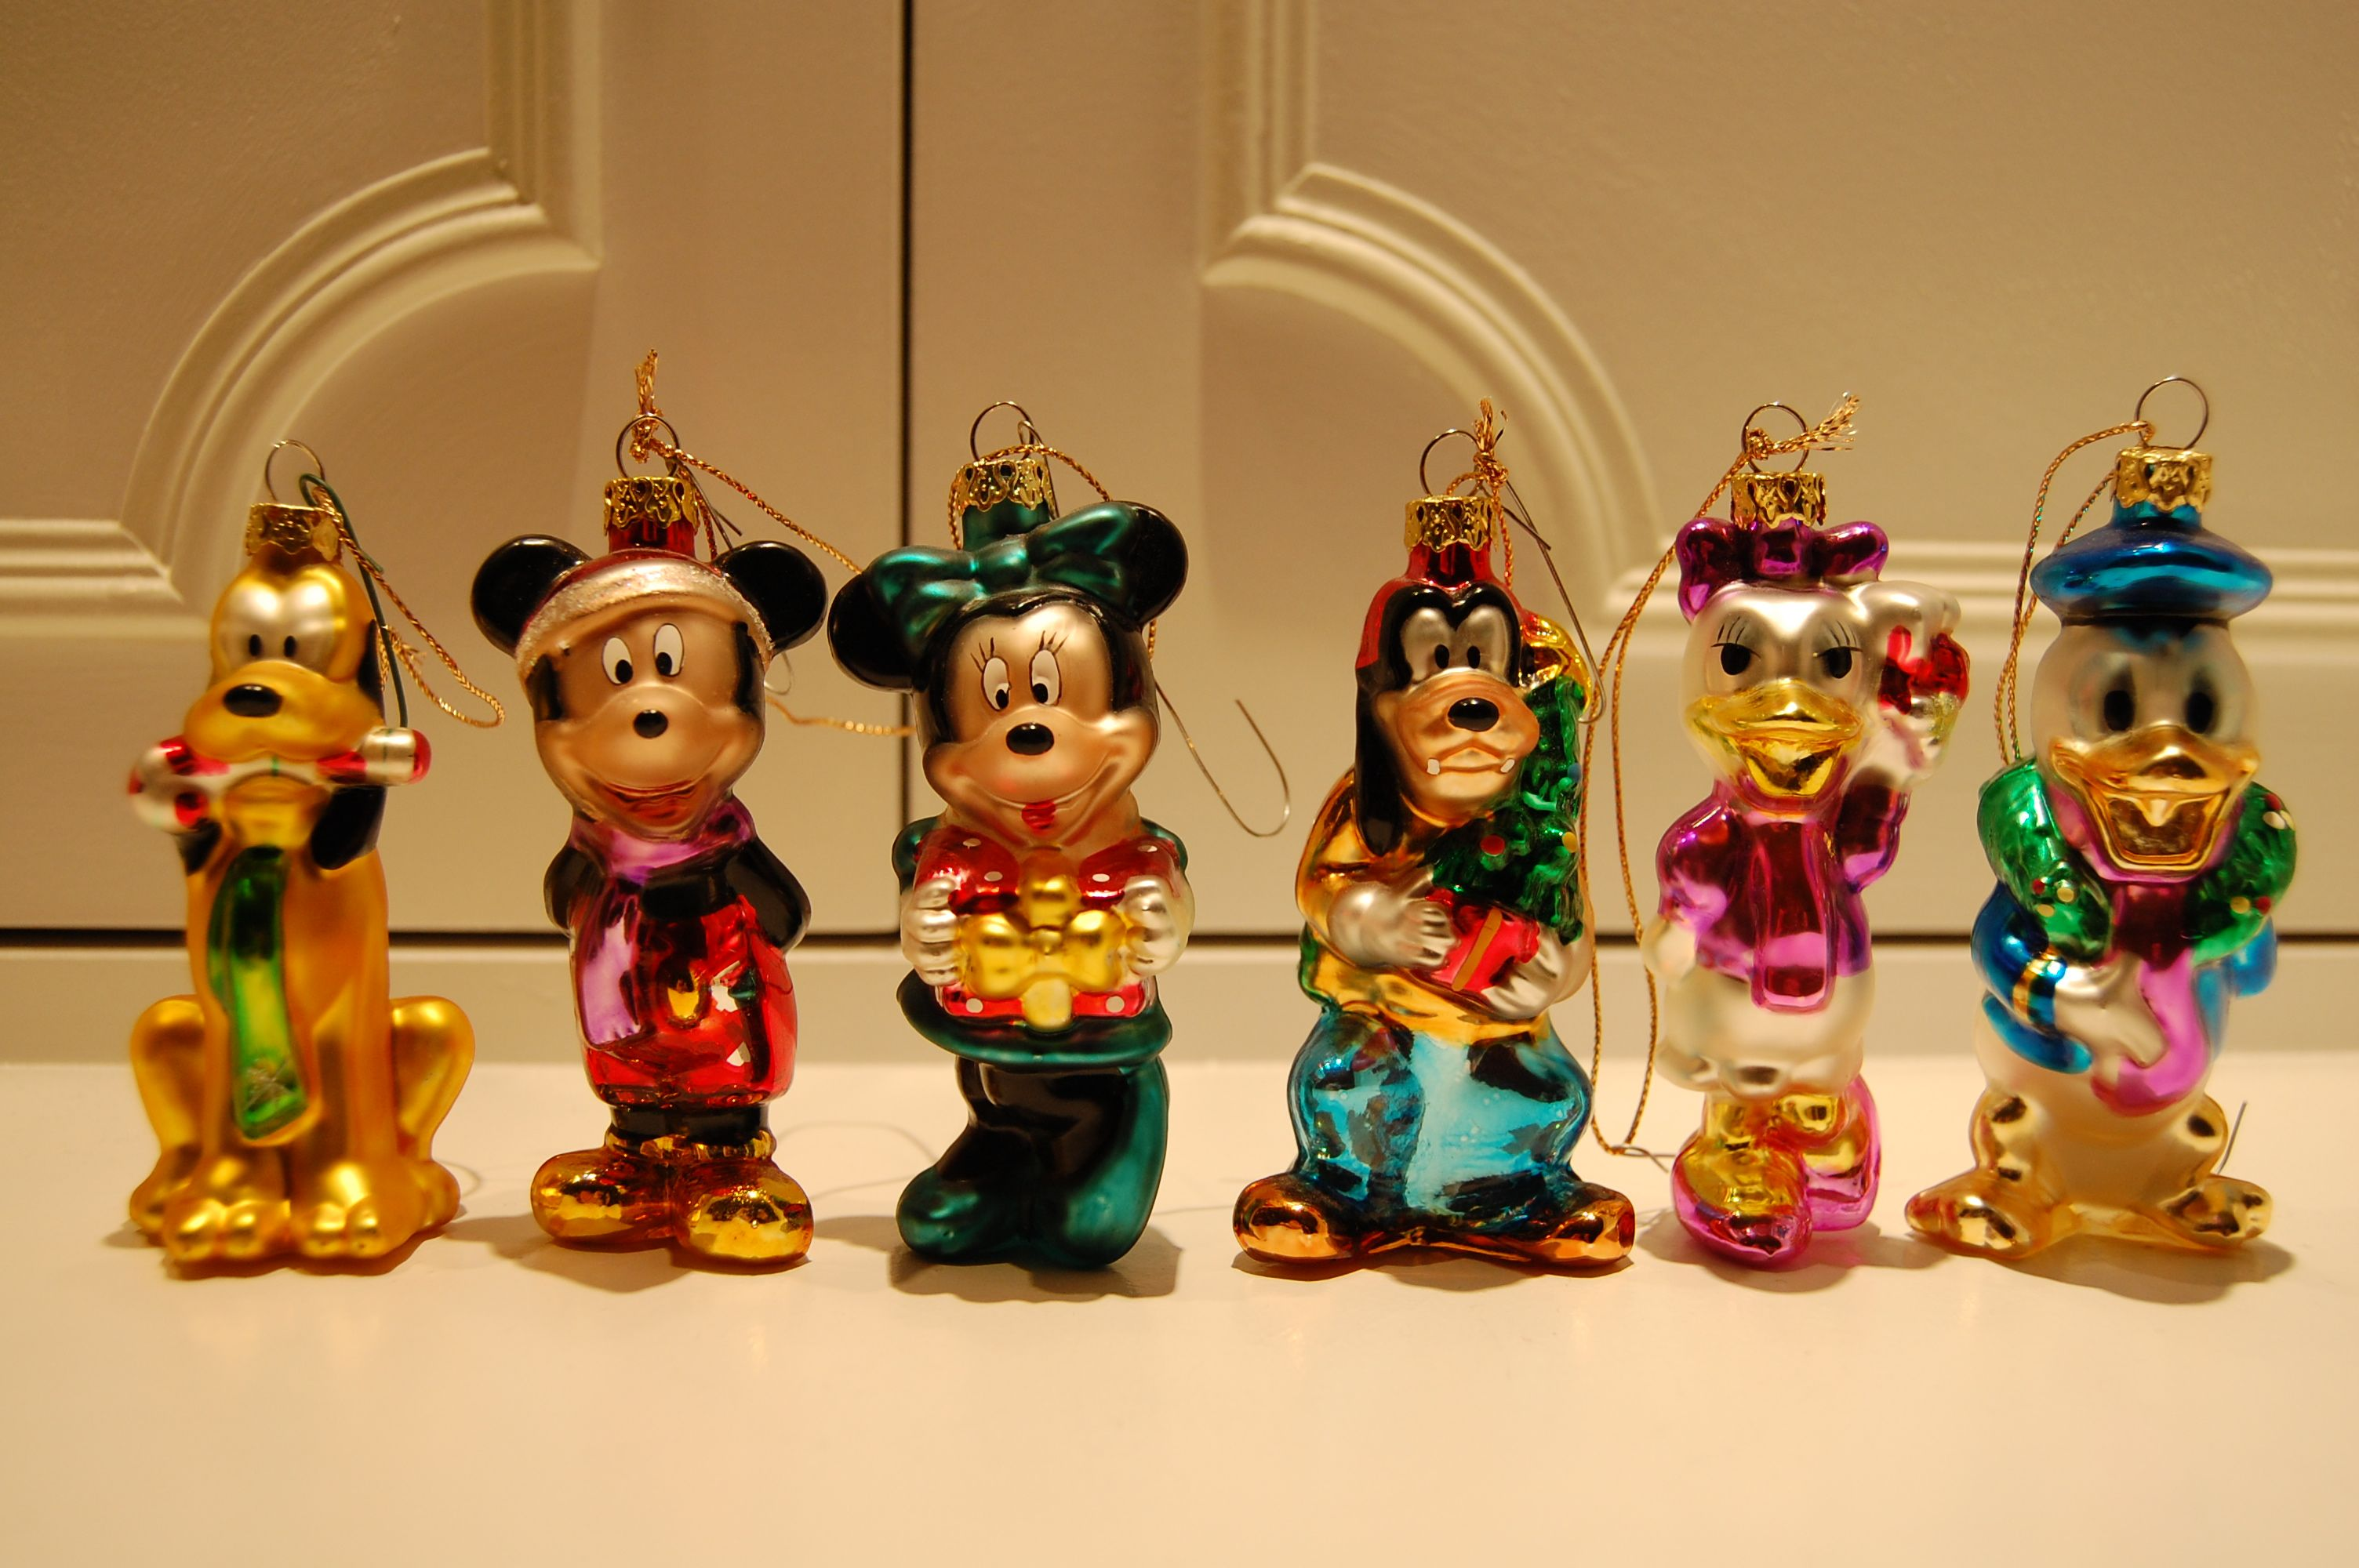 Disney ornament sets - The Full Set Of Blown Glass Ornaments Photo By Chris Barry